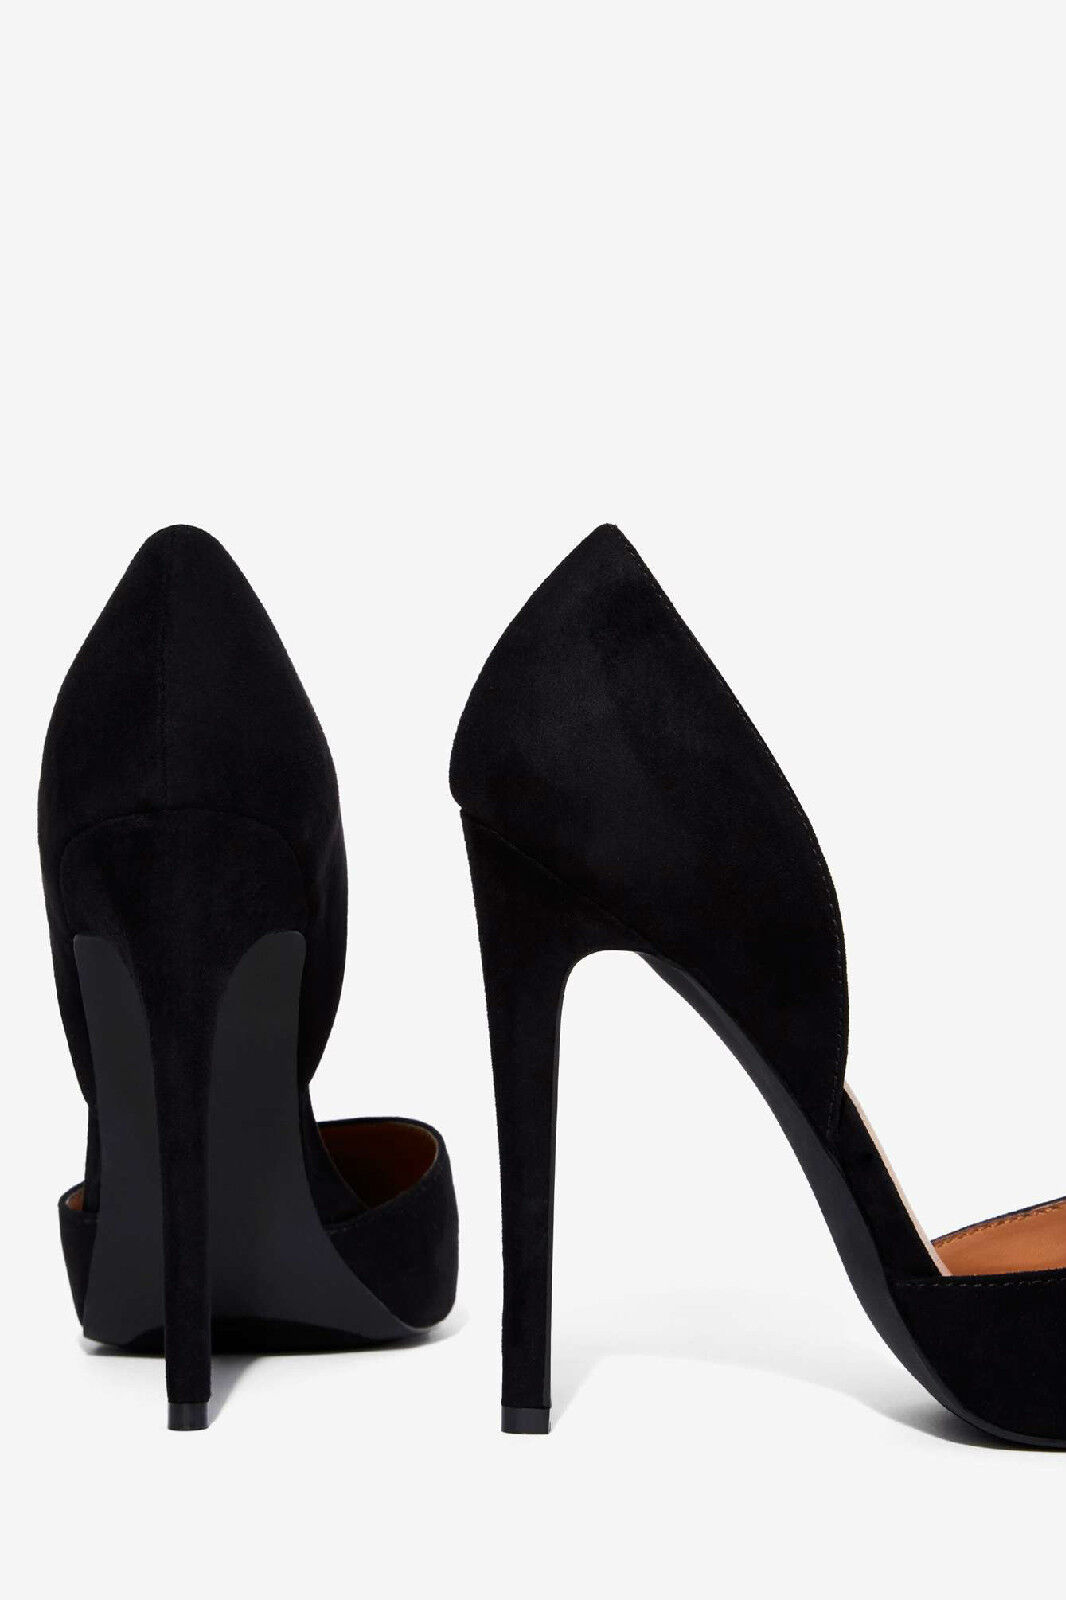 New New New  78 NASTY GAL schwarz AVENUE D'ORSAY FAUX SUEDE HEELS PUMPS schuhe SZ 10 34fad1